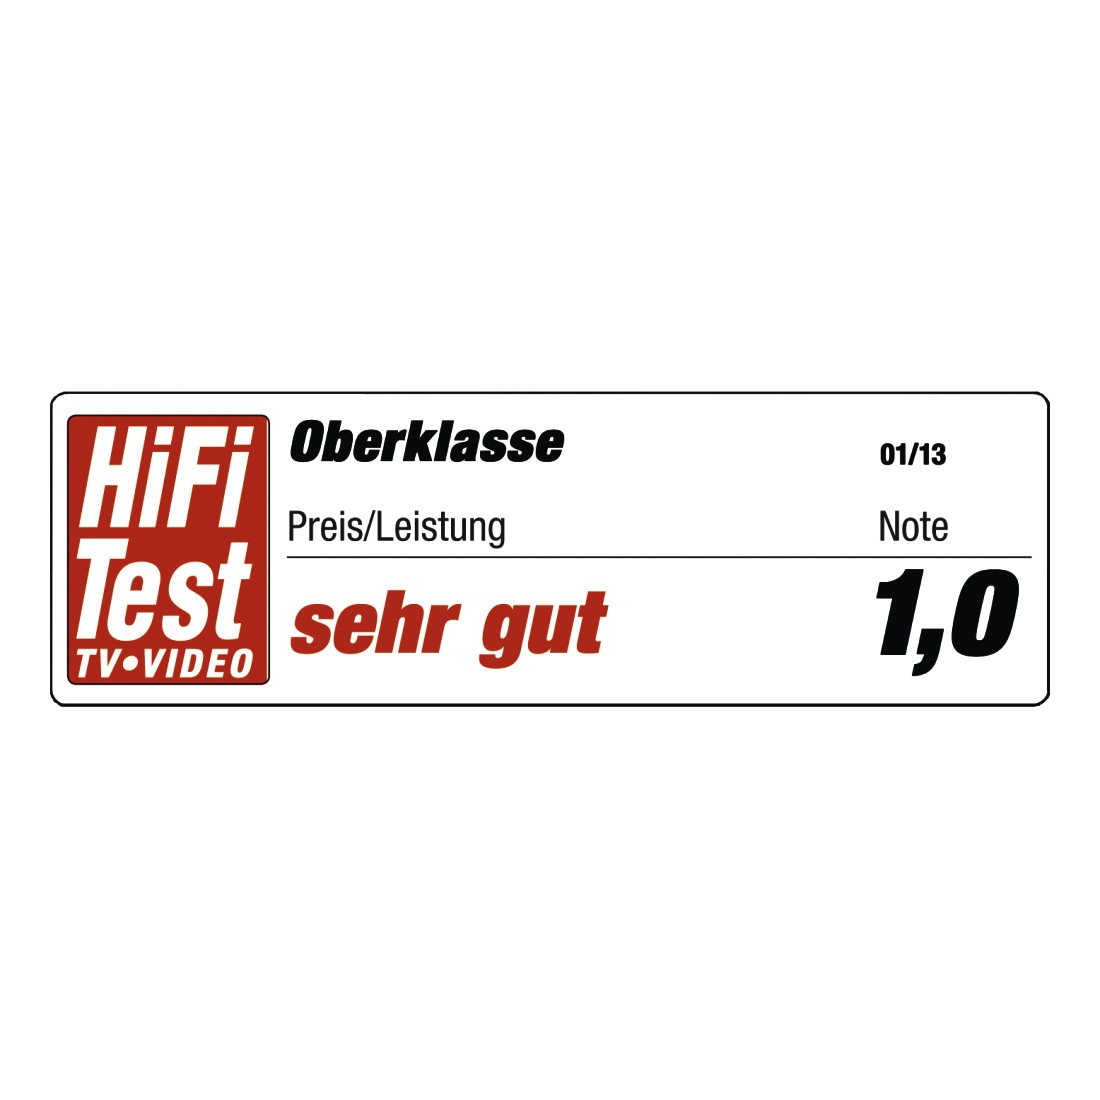 tex4 Druckfähiges Testurteil 4 - Avinity, High Speed HDMI™-Kabel, St. - St., Gewebe, Filter, vergoldet, Ethernet, 1 m